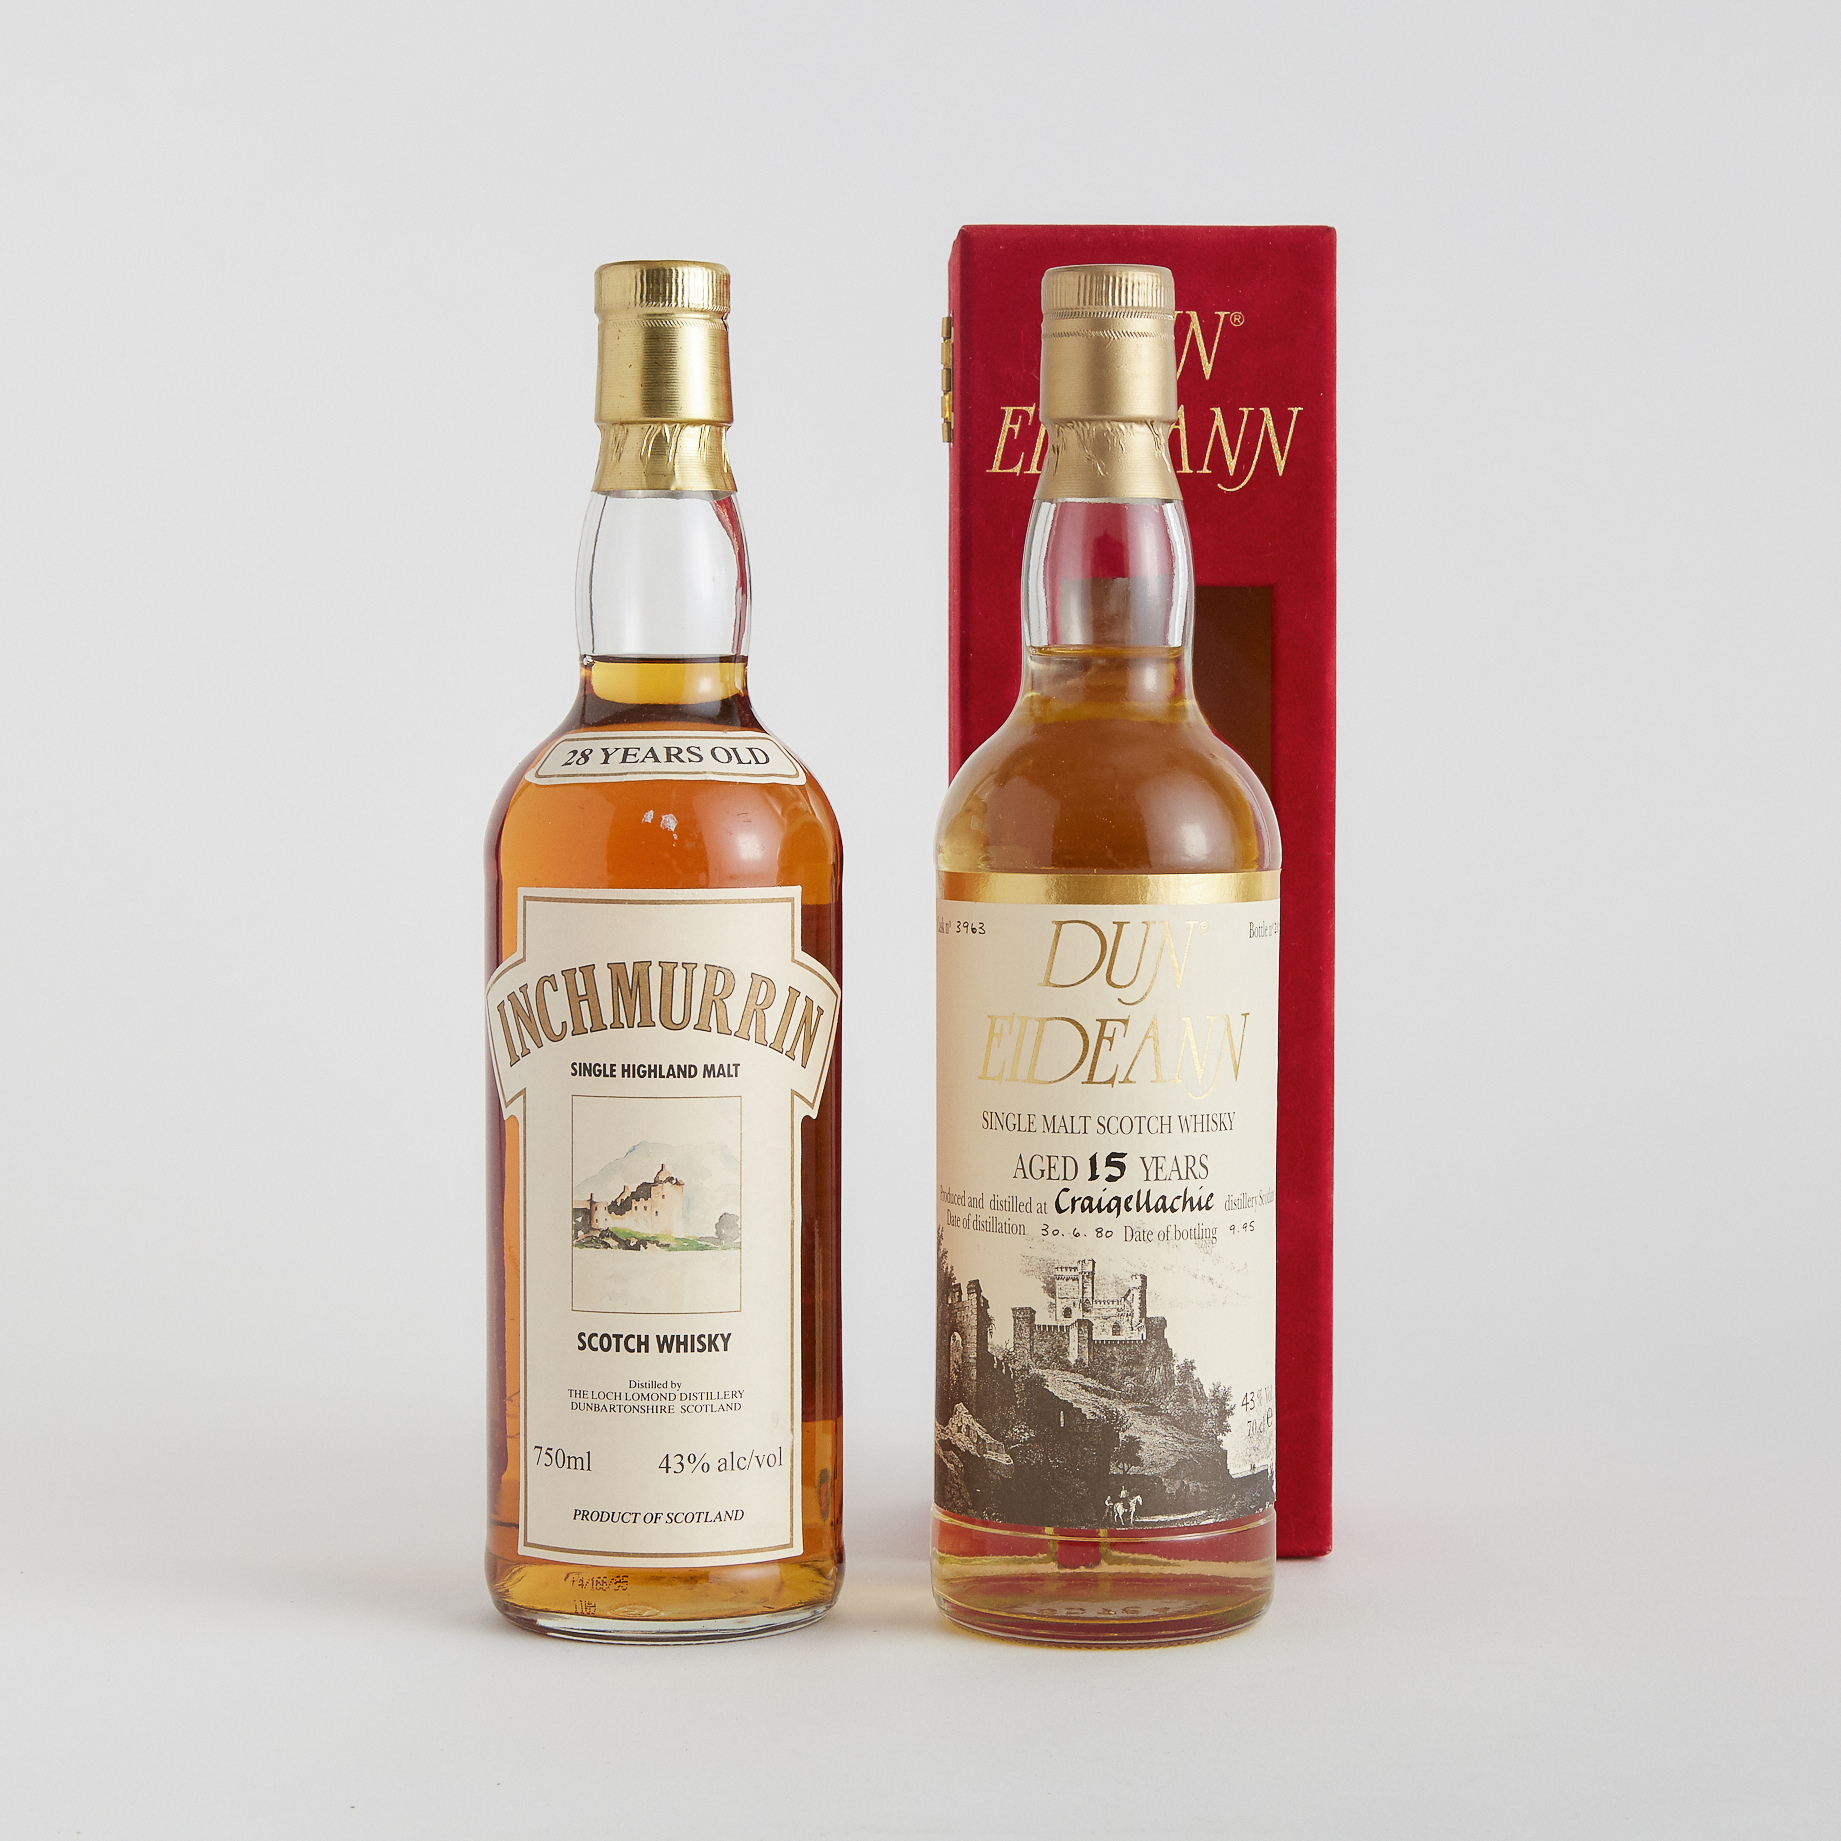 CRAIGELLACHIE SINGLE MALT WHISKY 15 YEARS (ONE 70 CL) INCHMURRIN SINGLE HIGHLAND MALT SCOTCH WHISKY 28 YEARS (ONE 750 ML)